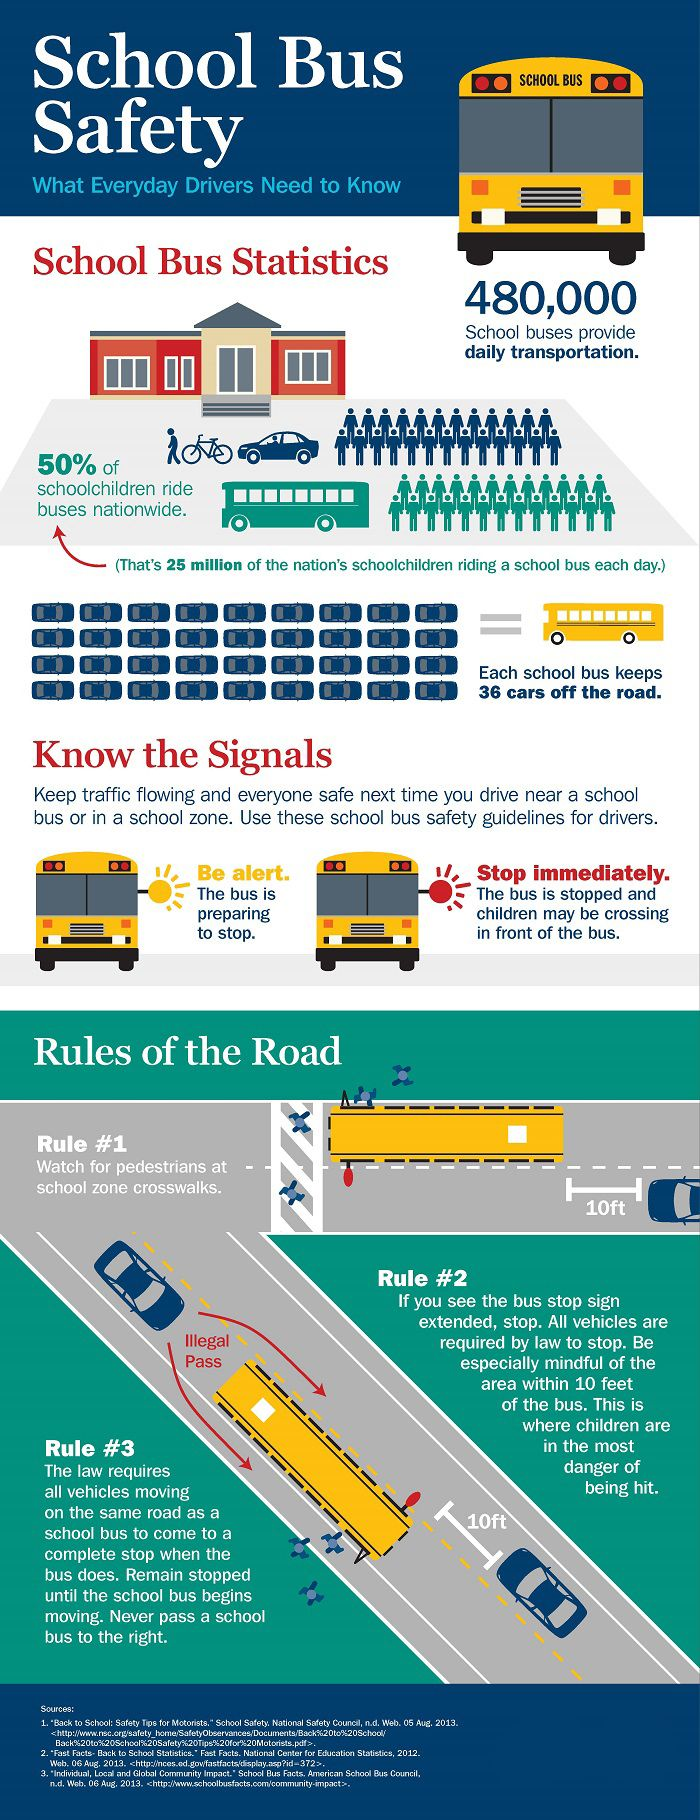 School Bus Safety Every Driver Should Know … School bus